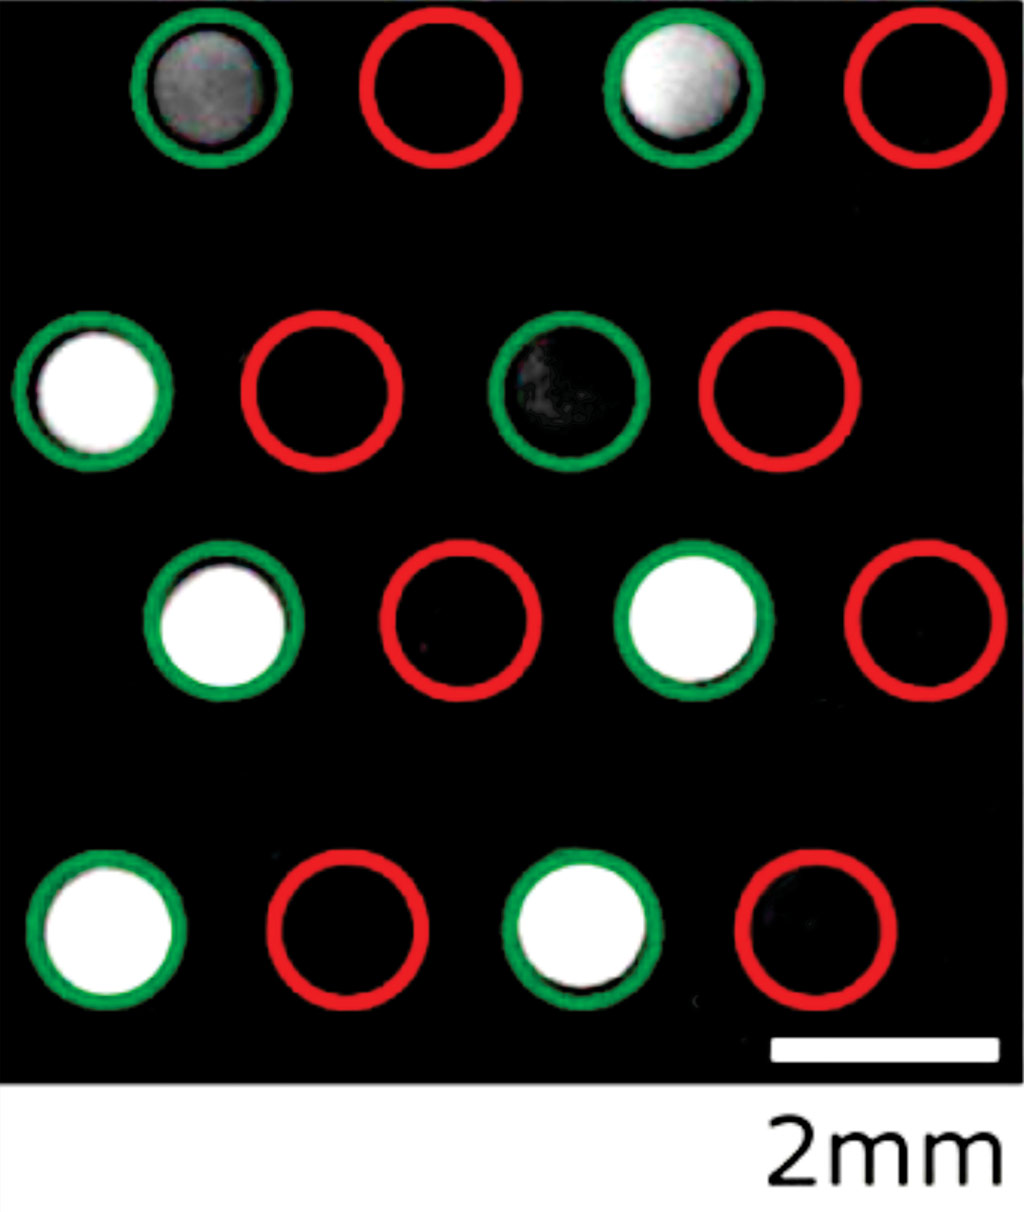 Image: Fluorescence from on-chip Recombinase Polymerase Amplifications assay for Staphylococcus aureus (Photo courtesy of Leibniz Institute of Polymer Research).